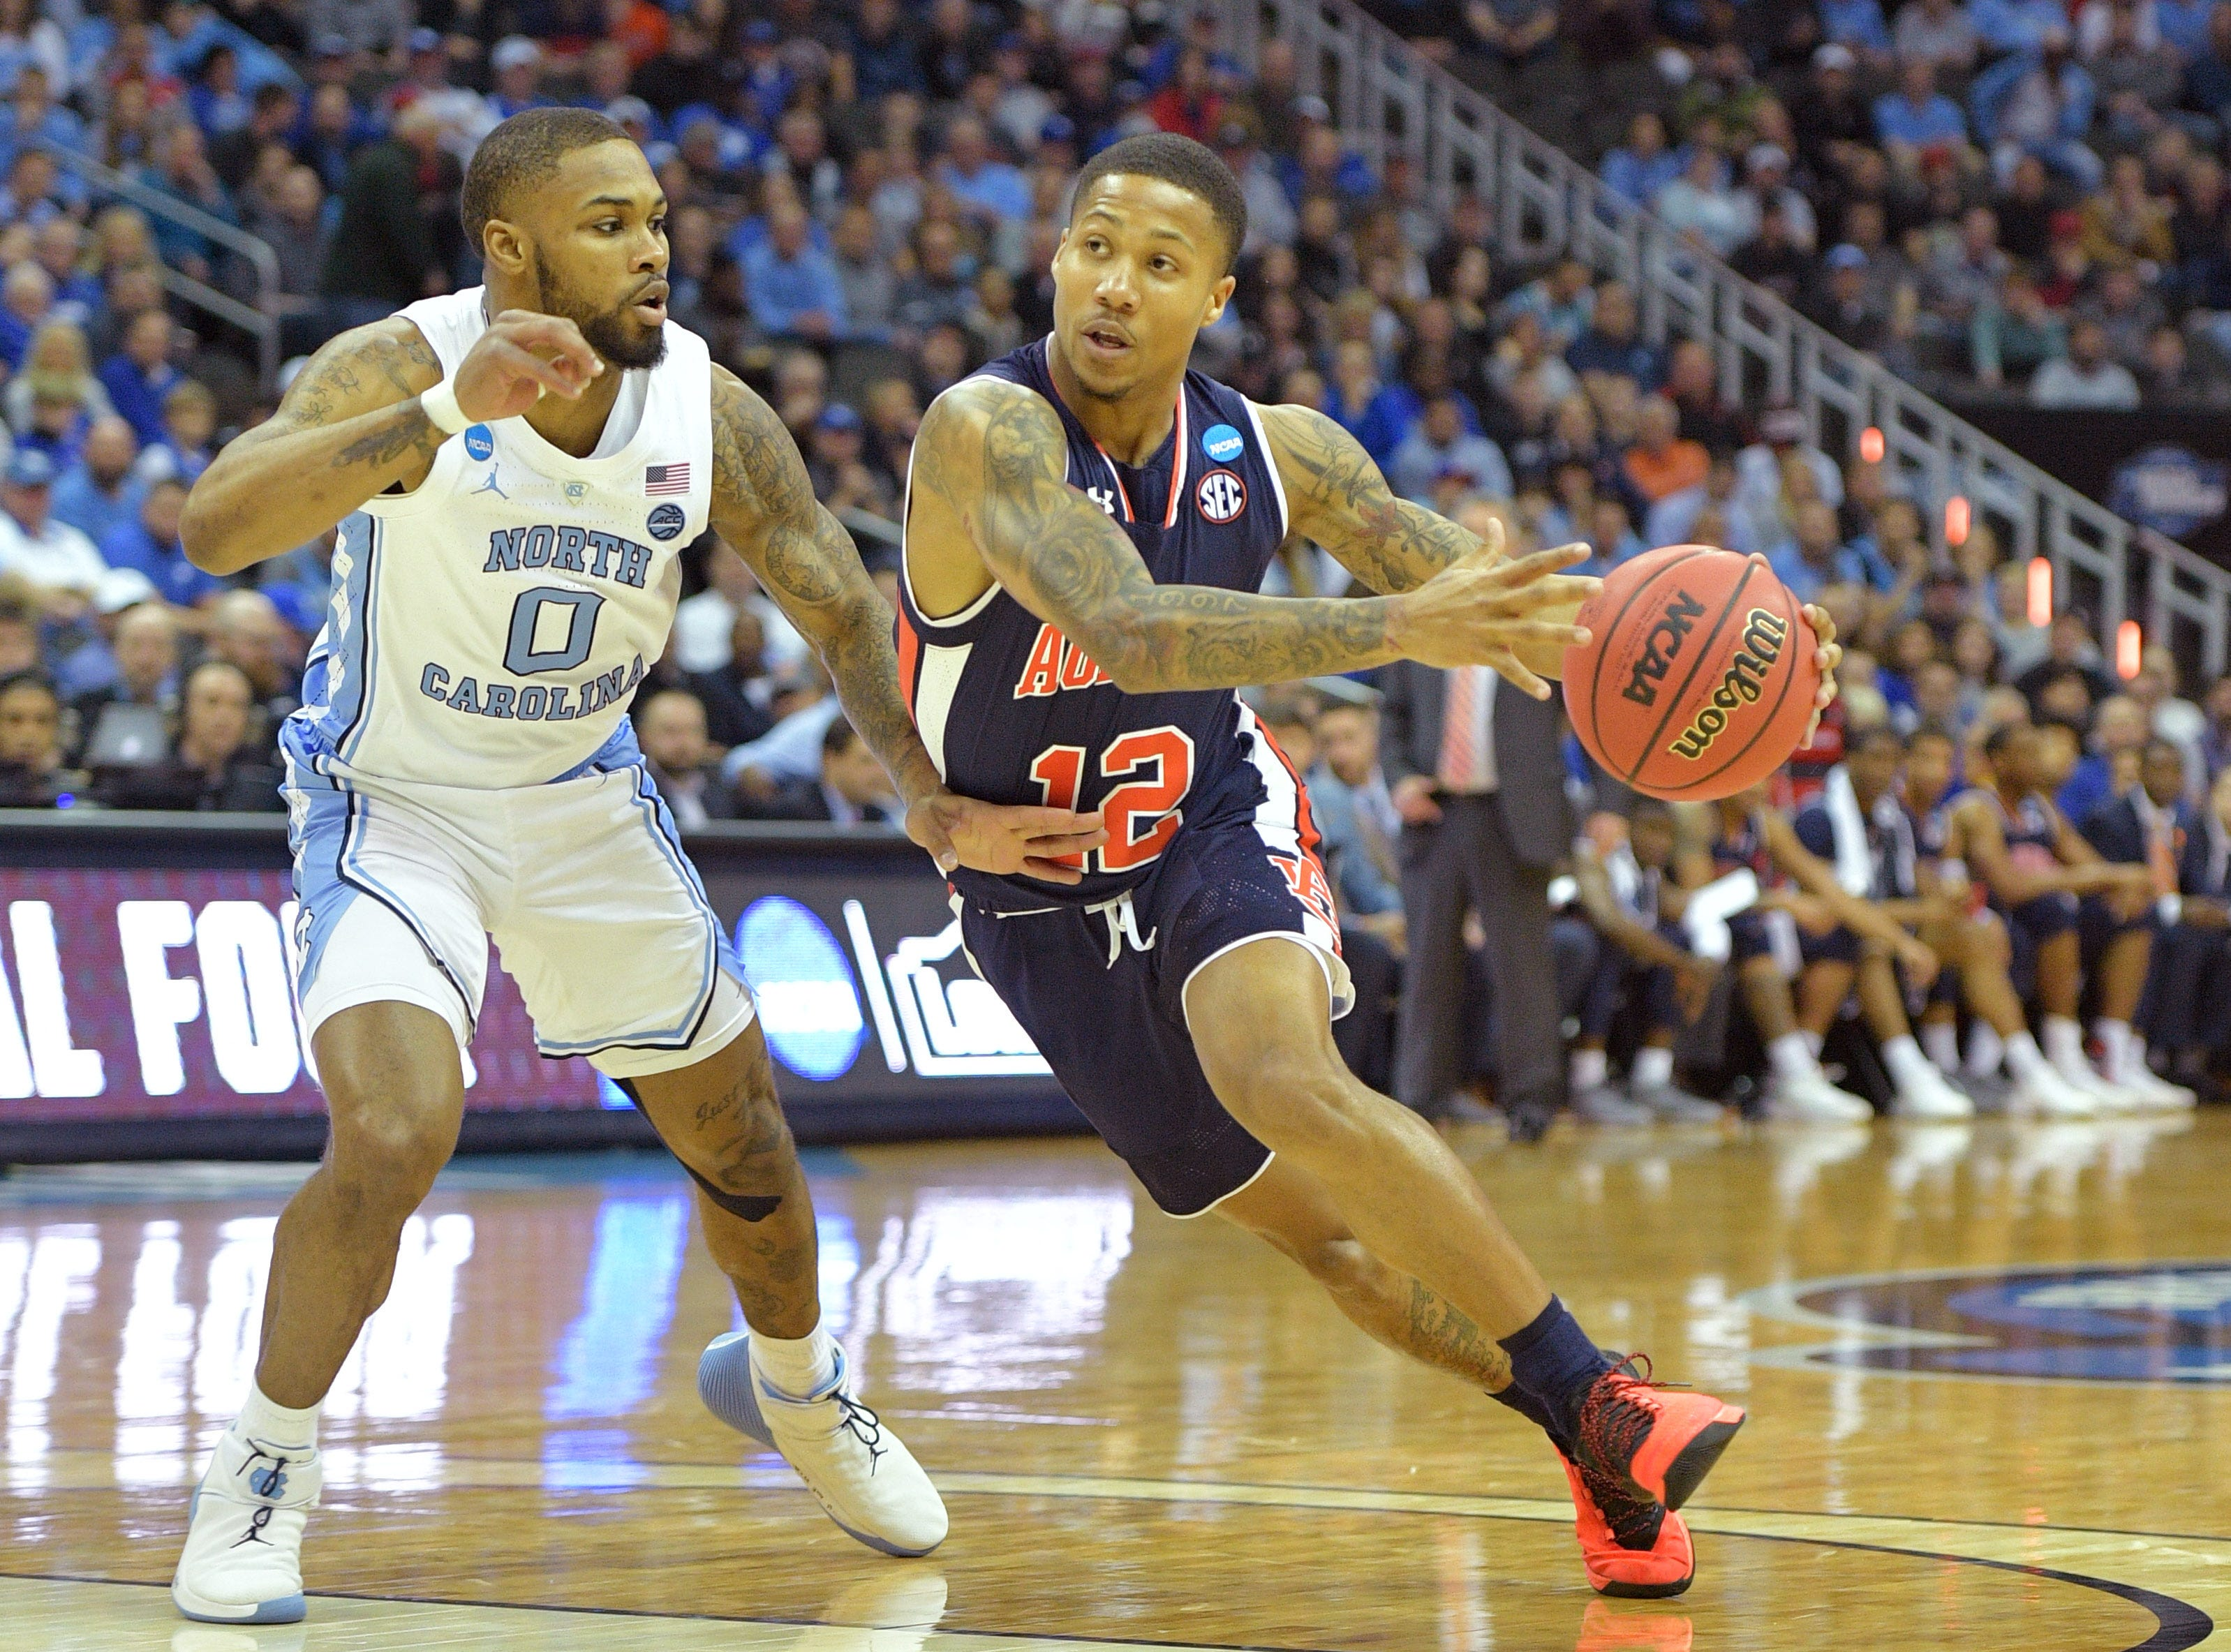 Auburn Tigers guard J'Von McCormick (12) drives to the basket against North Carolina Tar Heels guard Seventh Woods (0) during the first half in the semifinals of the midwest regional of the 2019 NCAA Tournament at Sprint Center.